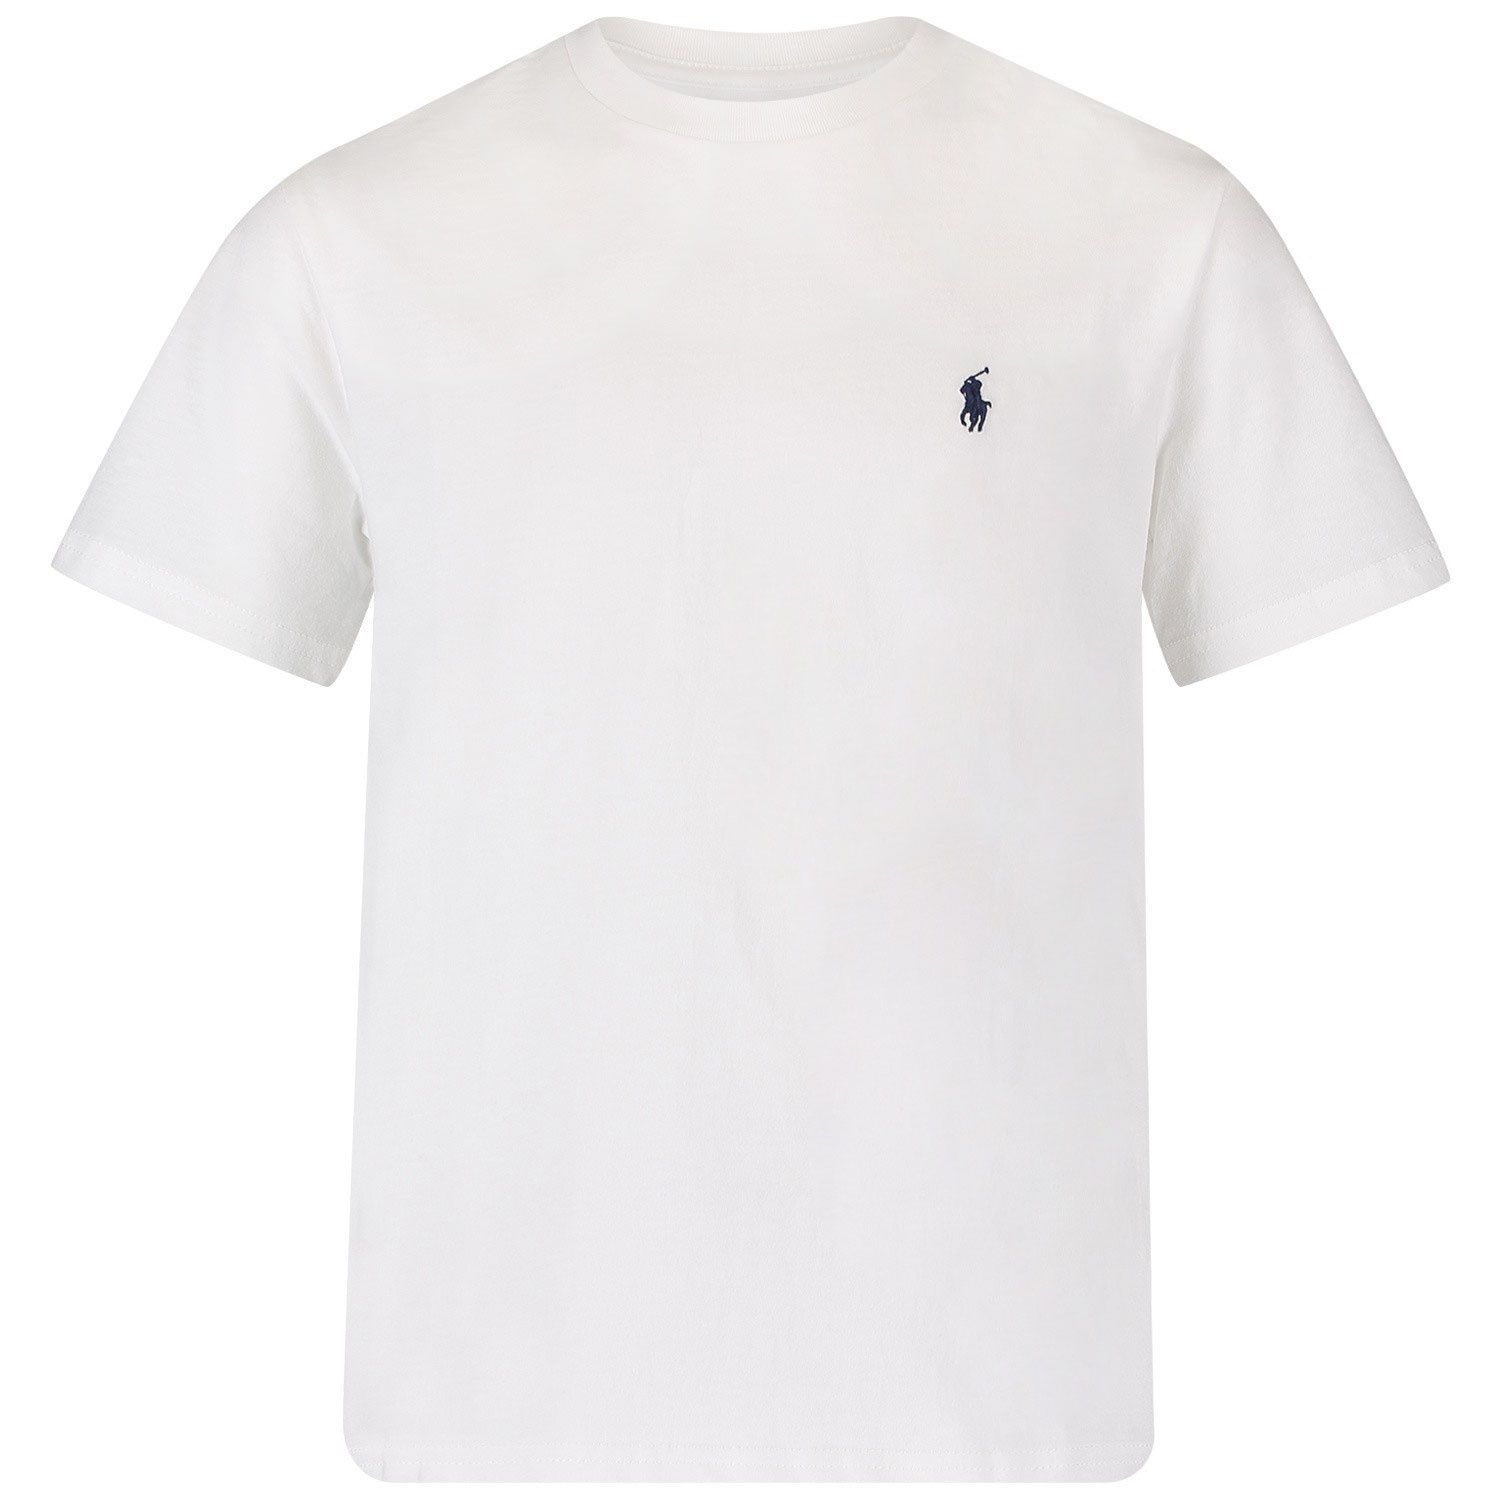 Picture of Ralph Lauren 674984 kids t-shirt white